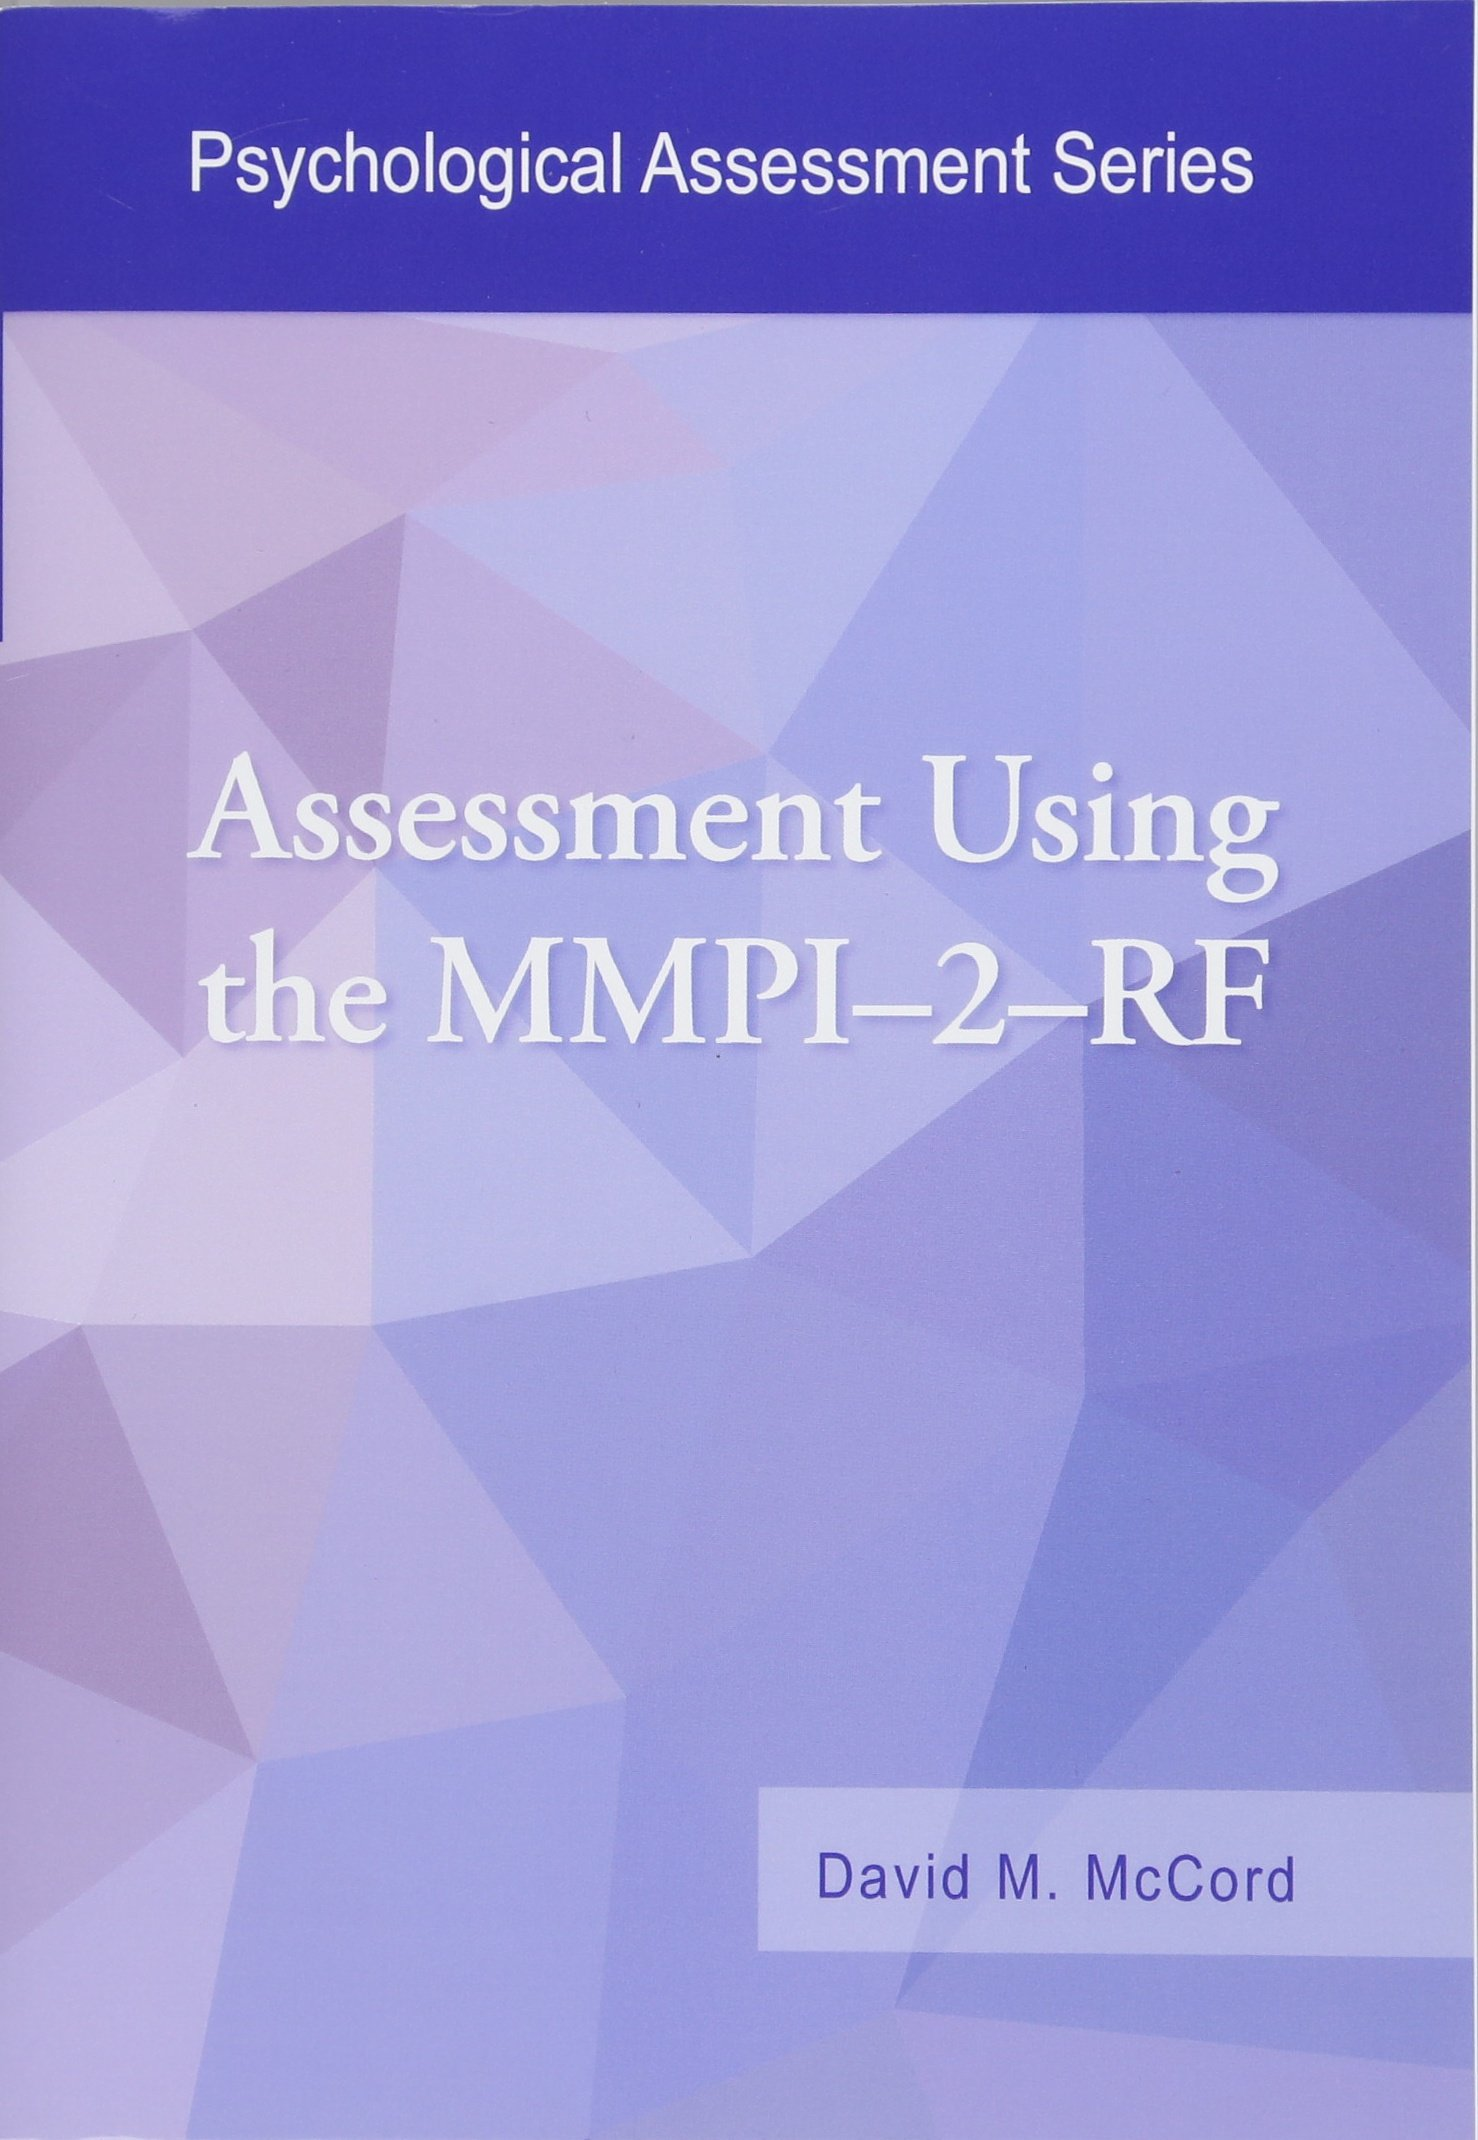 Buy Assessment Using The Mmpi 2 Rf Psychological Assessment Series Book Online At Low Prices In India Assessment Using The Mmpi 2 Rf Psychological Assessment Series Reviews Ratings Amazon In